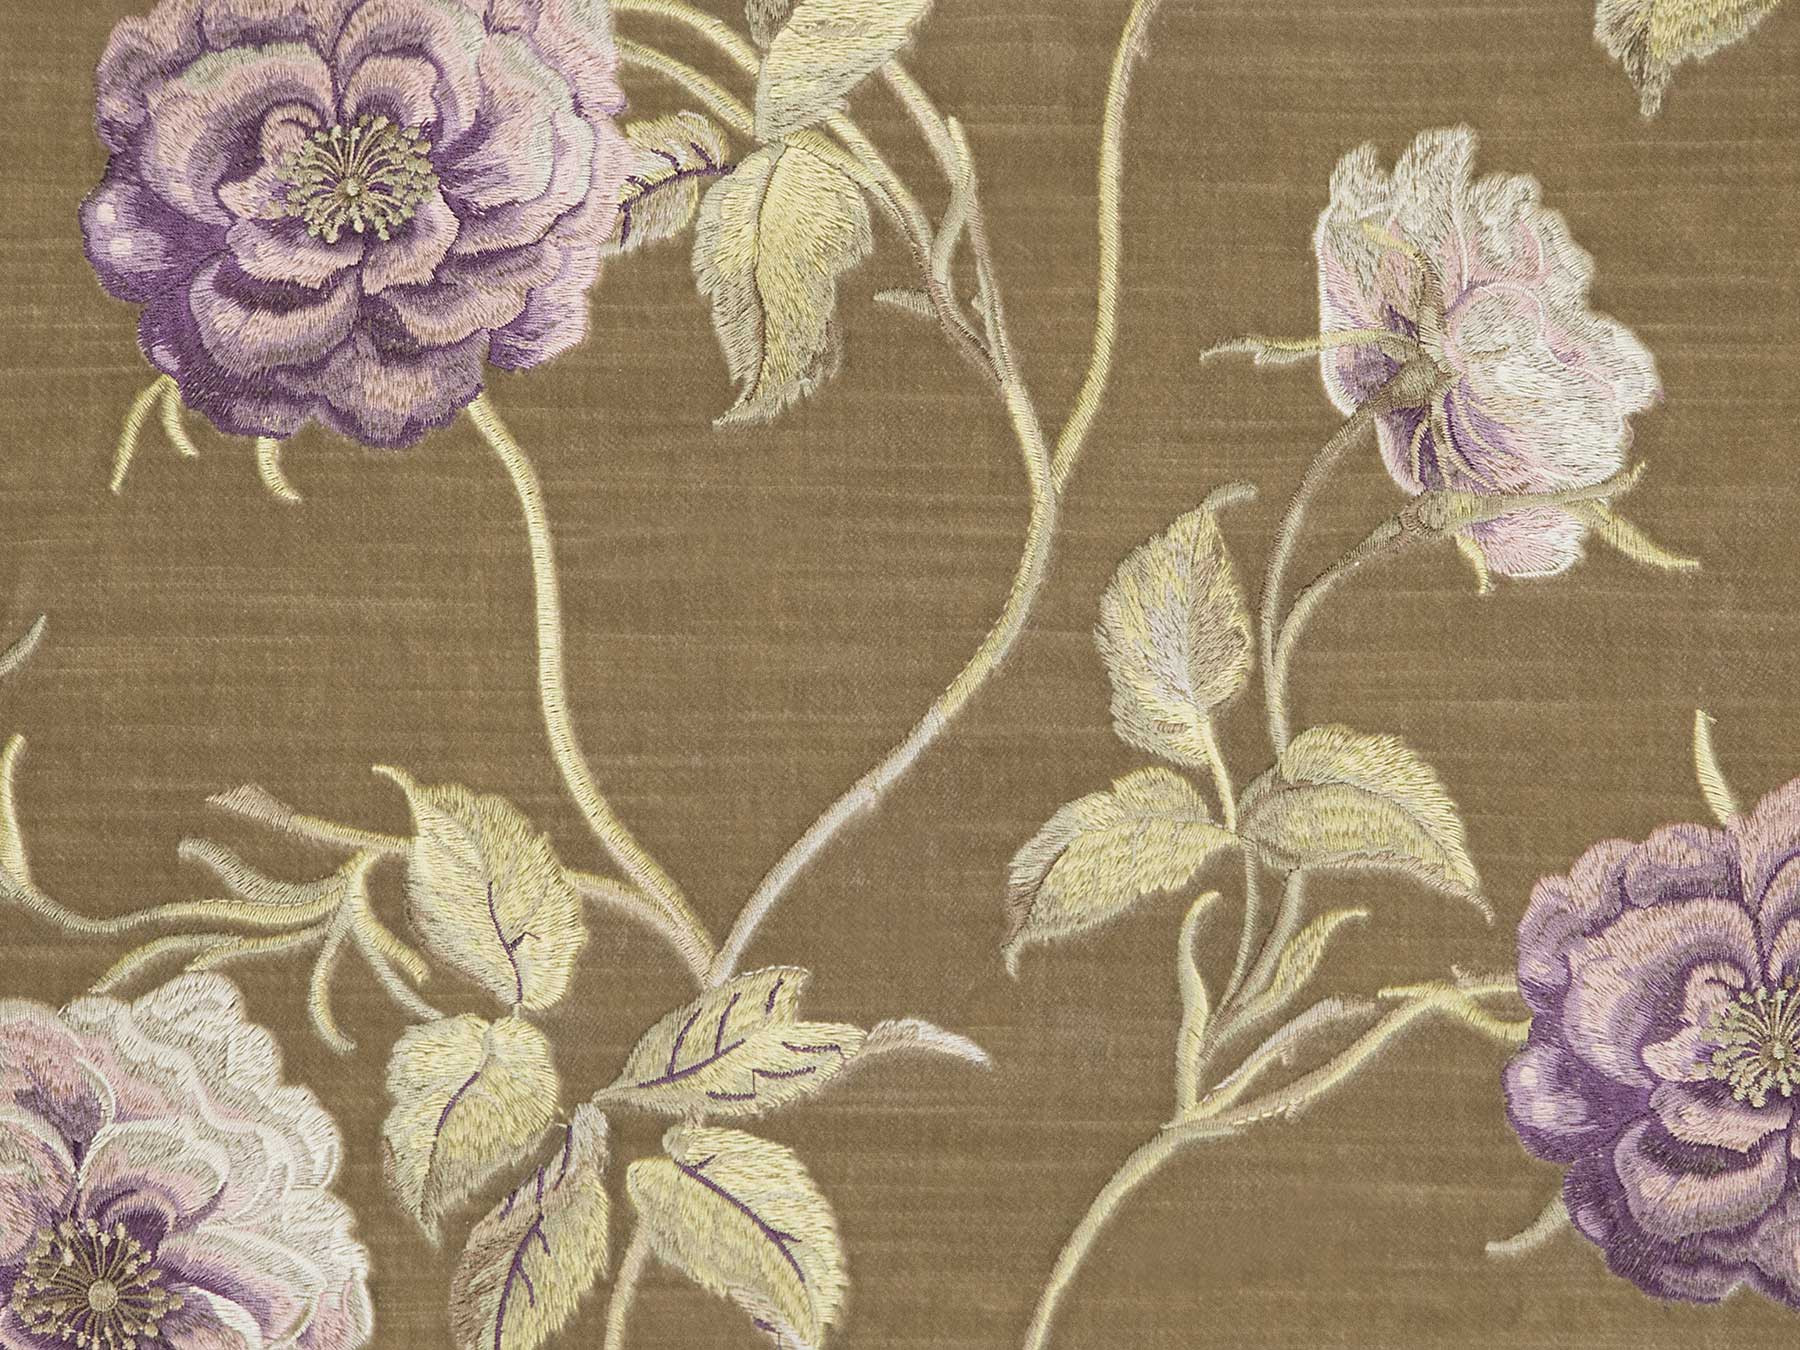 218/20 Jardin/Dark-Beige Коллекция: Showroom collection Part 1